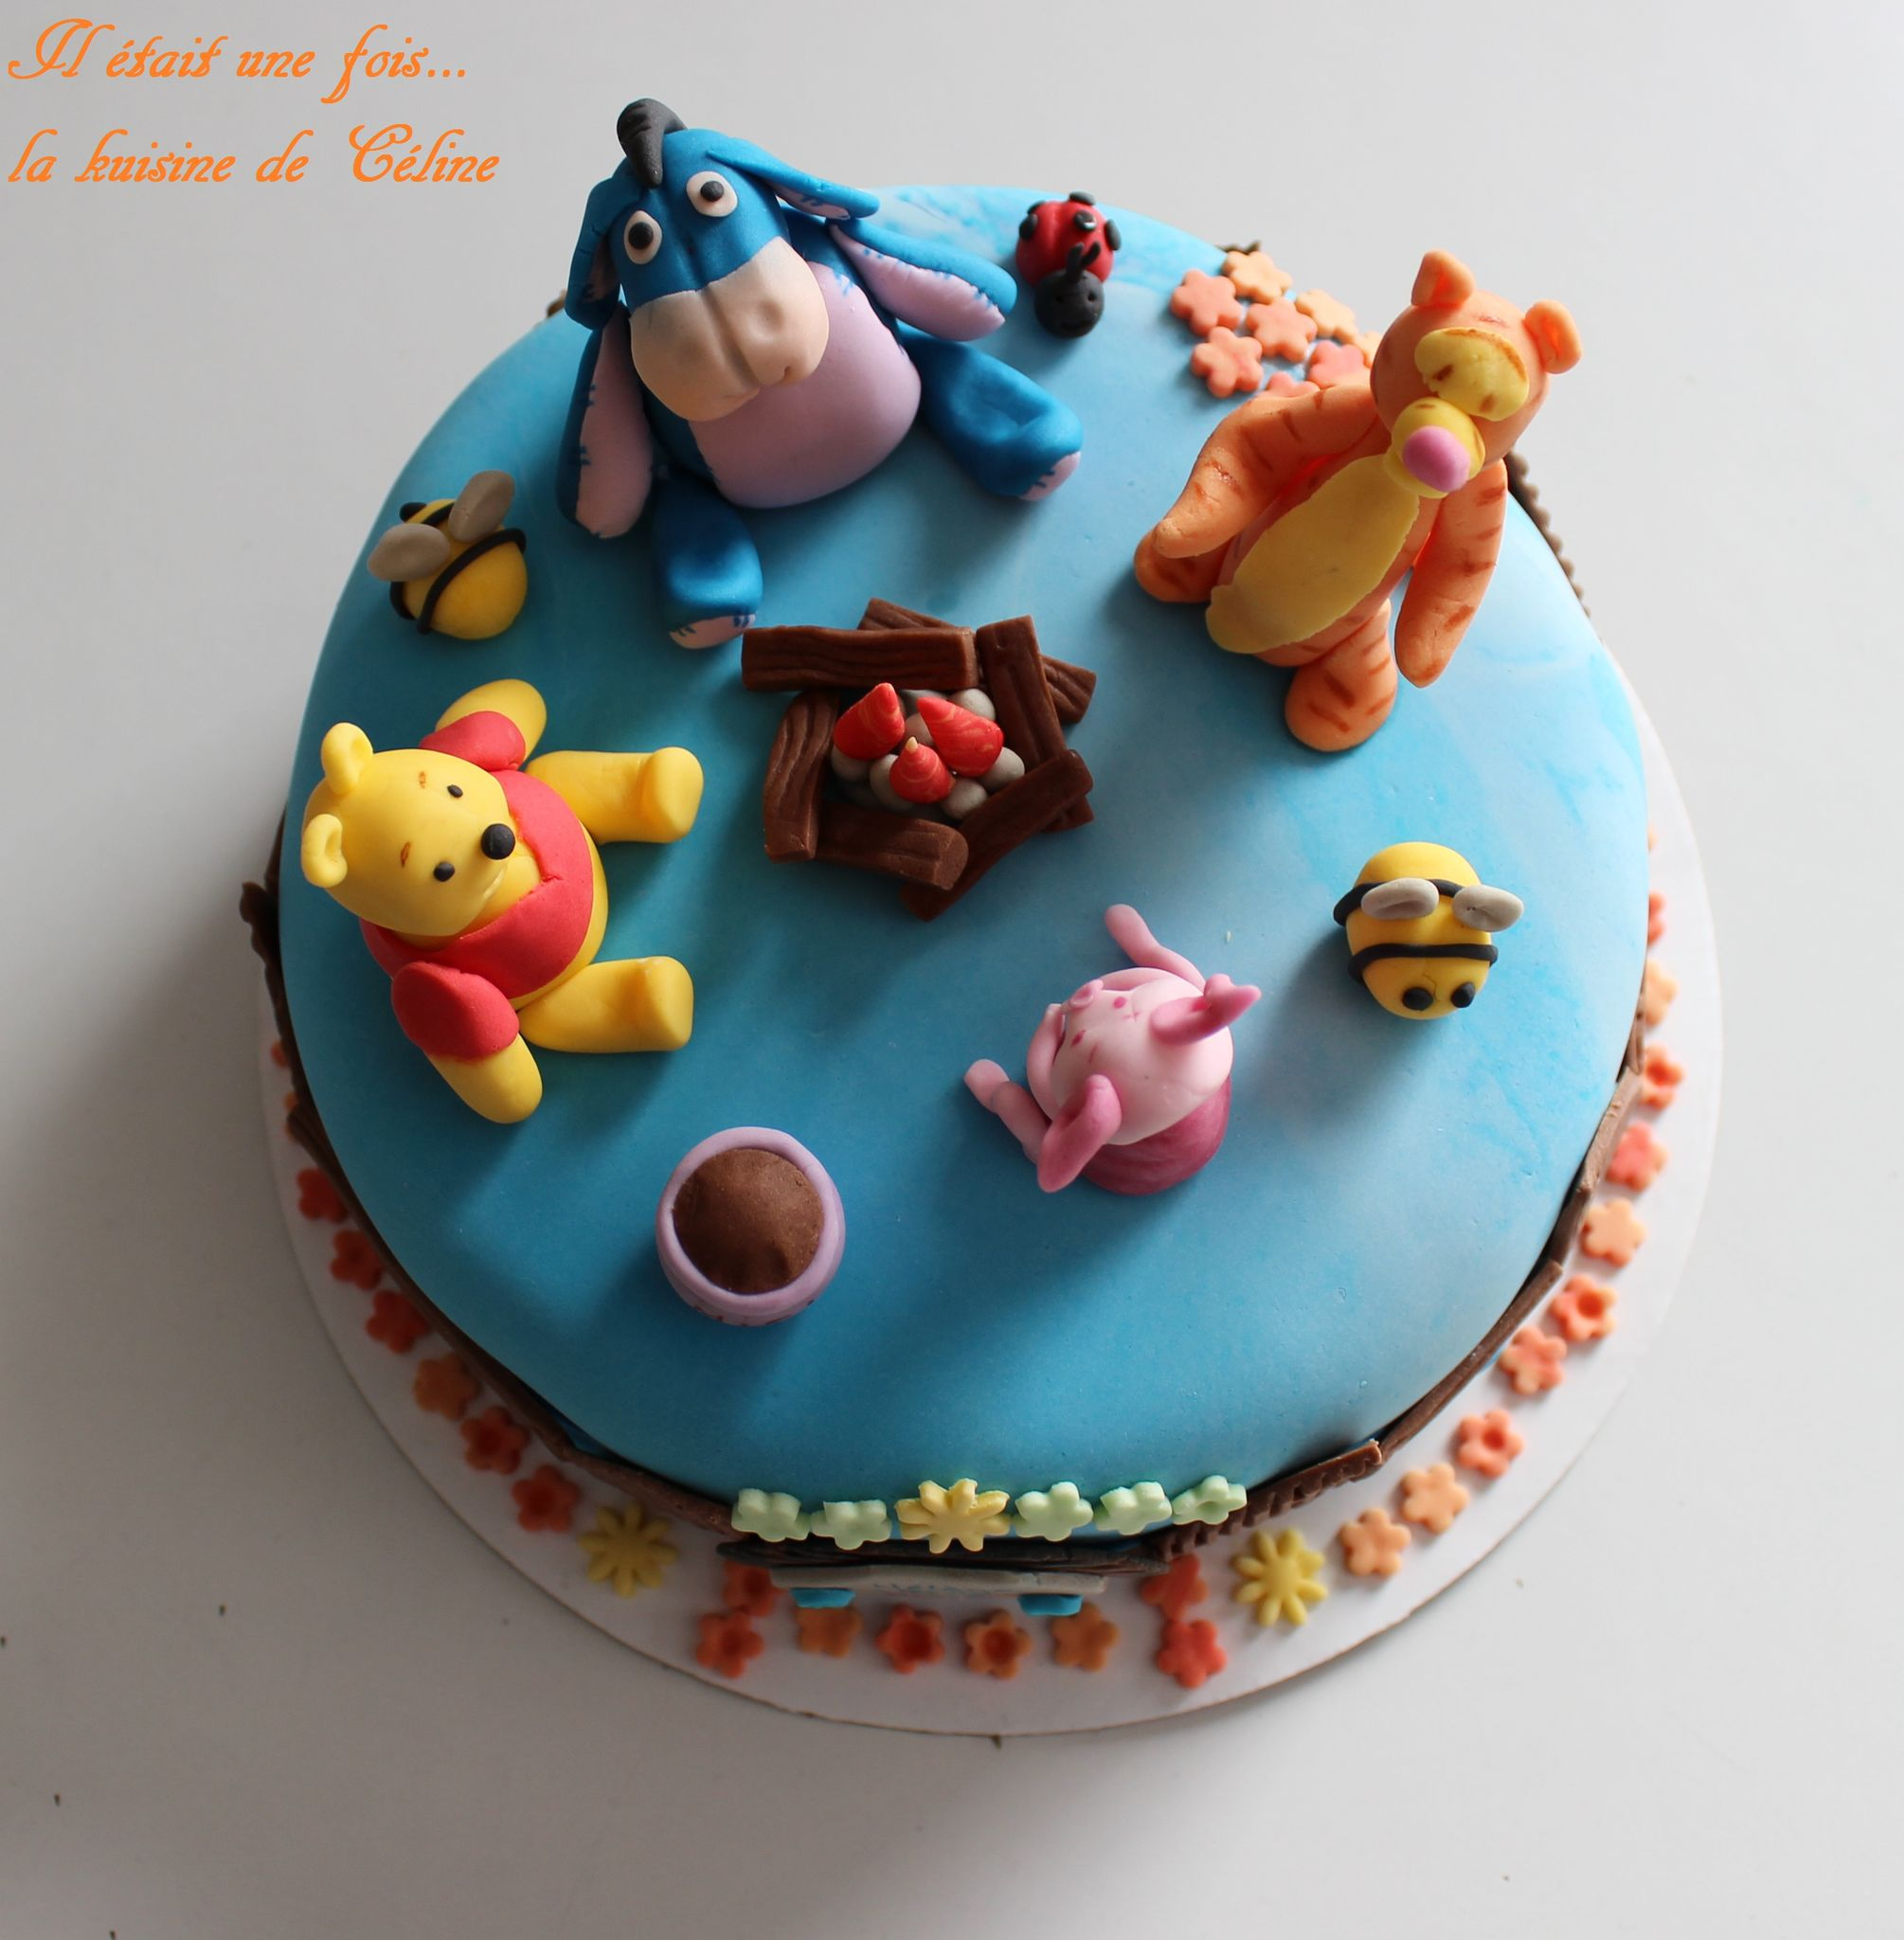 Decoration winnie l'ourson pour gateau